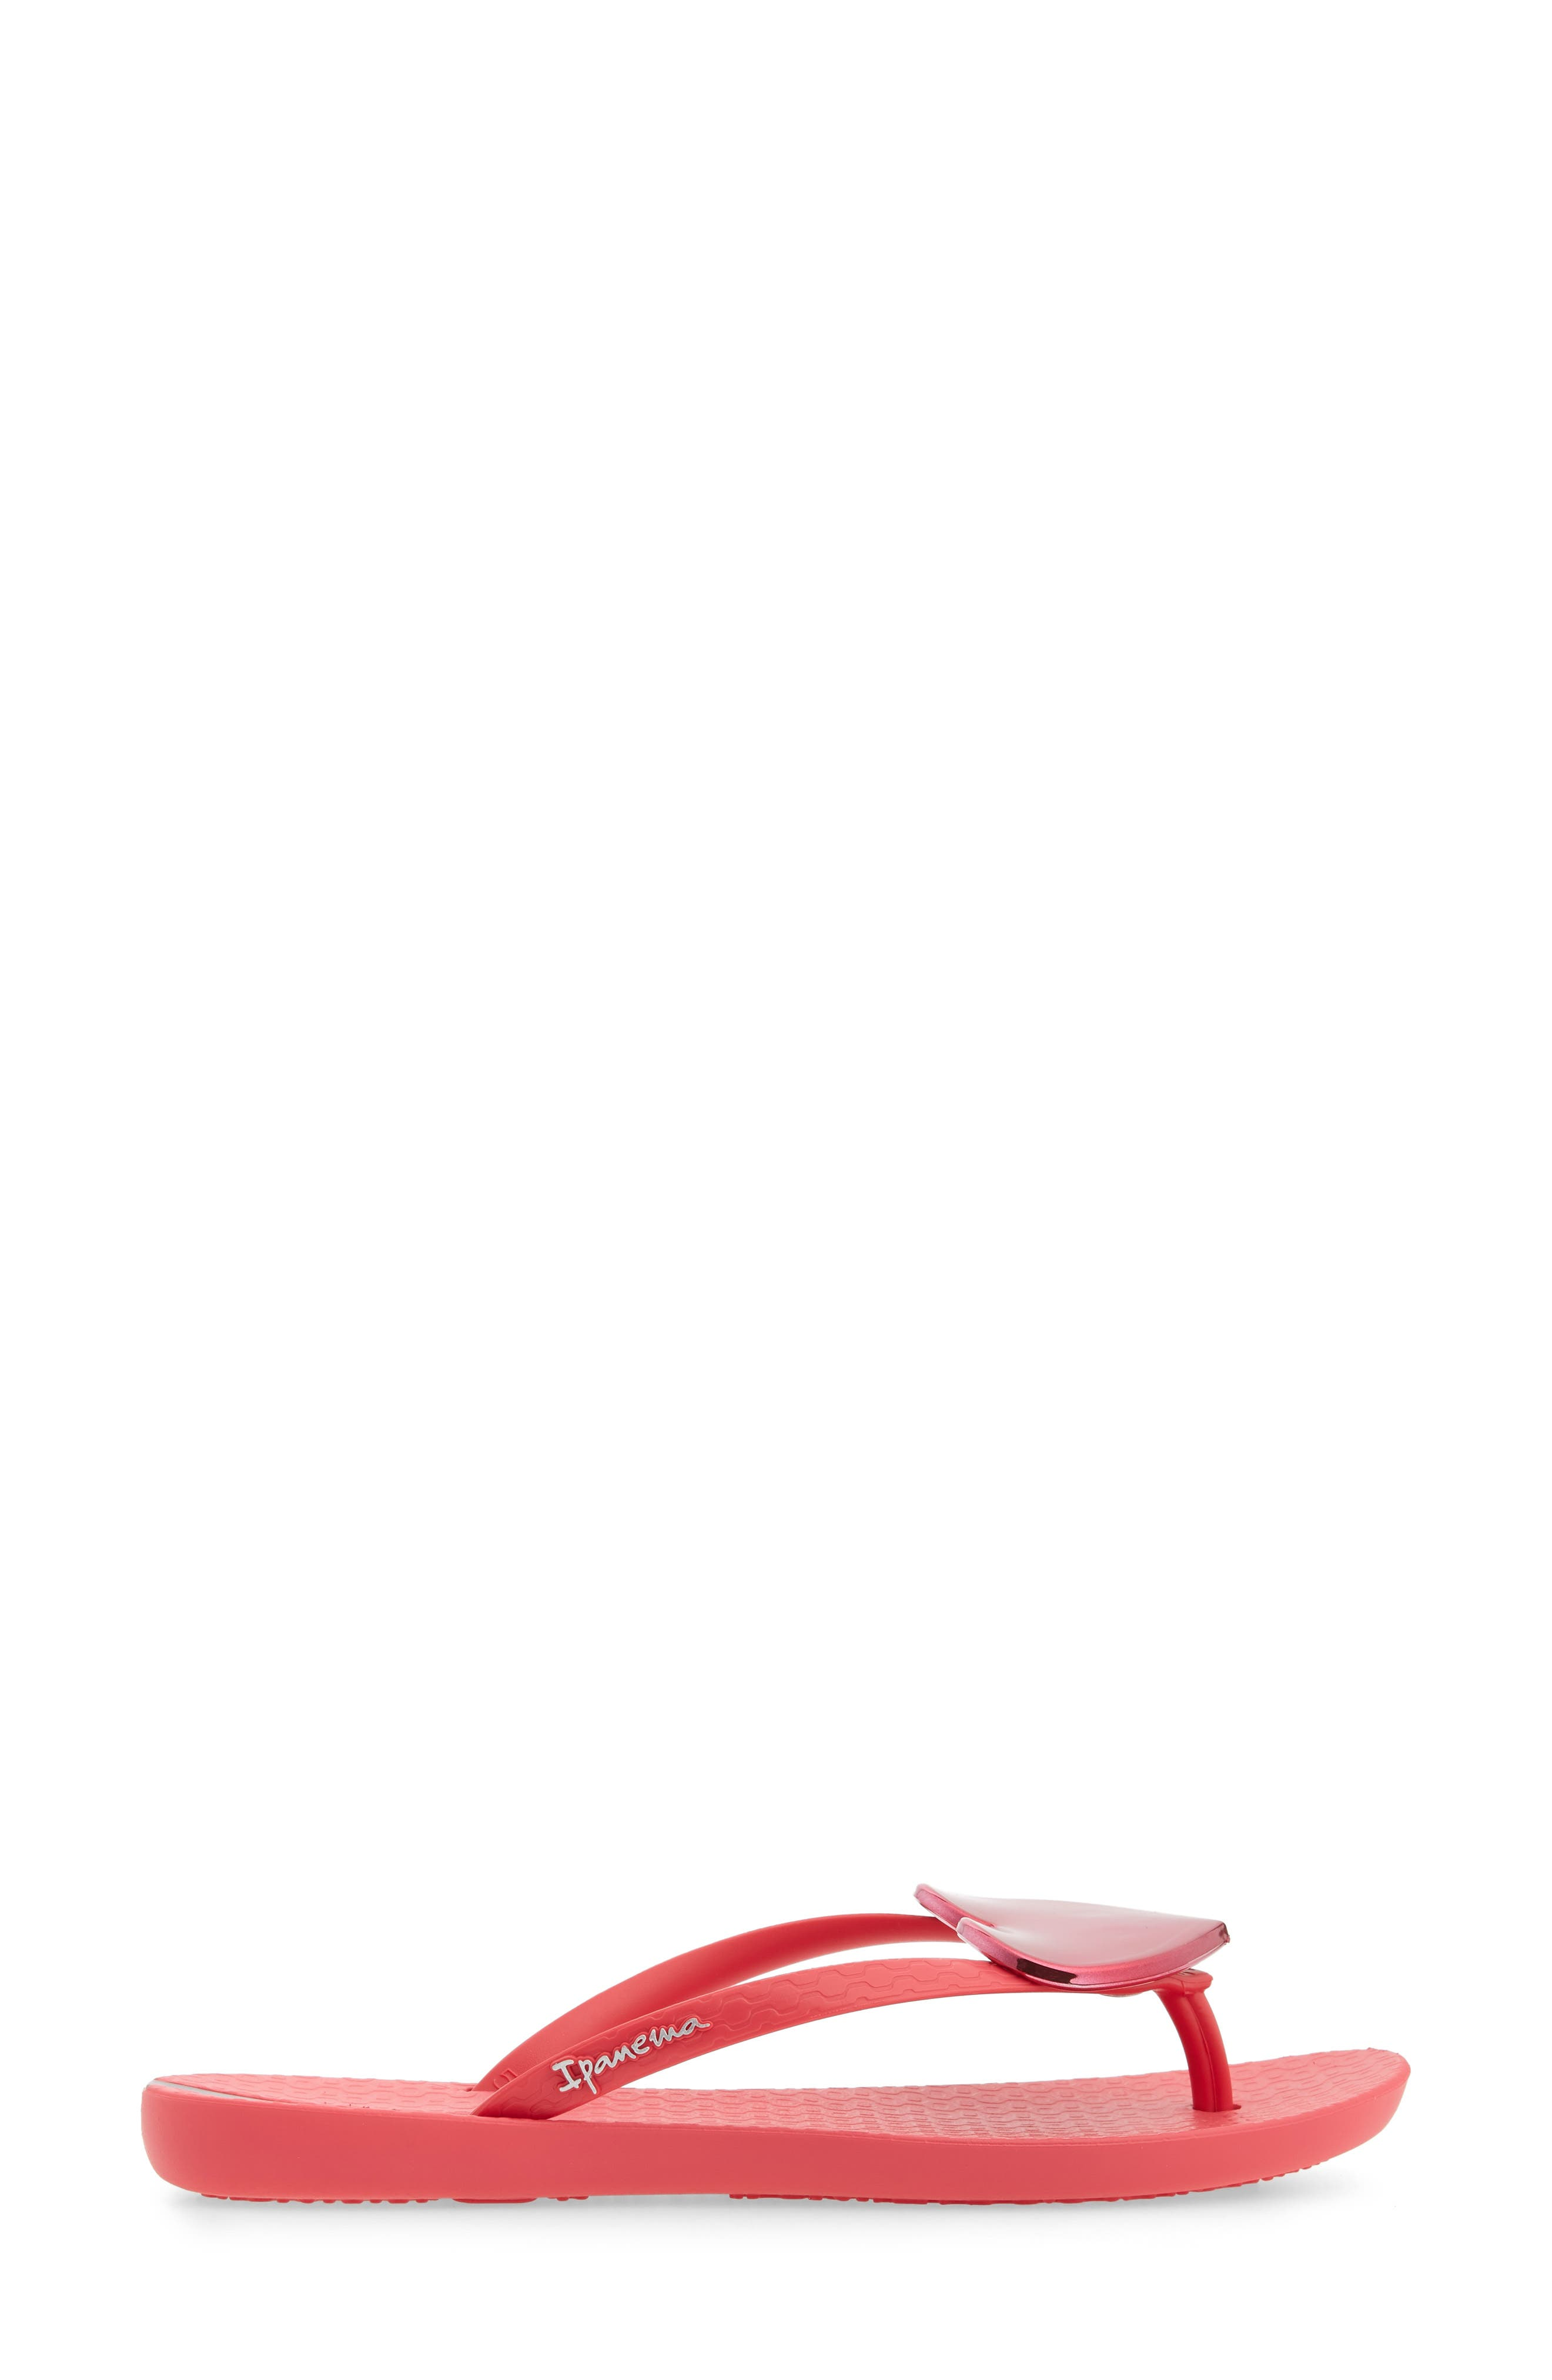 IPANEMA, Wave Heart Flip Flop, Alternate thumbnail 3, color, PINK/ RED